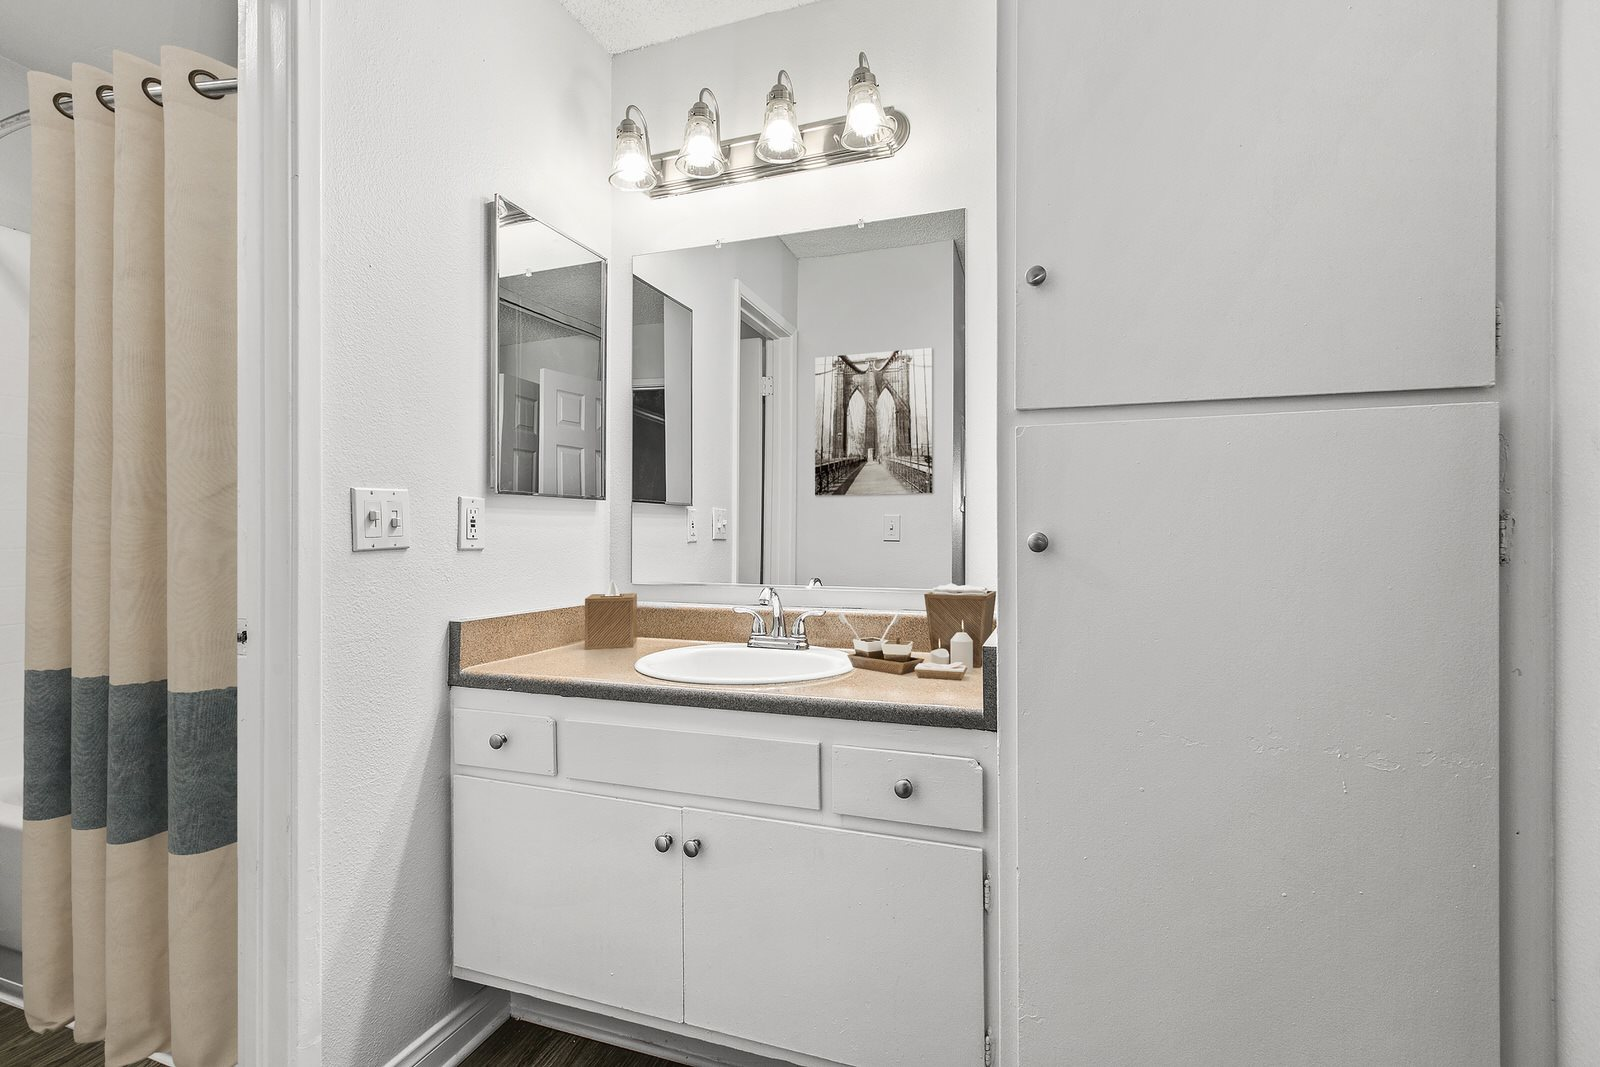 Bathroom Photo Studio For Rent at Milano Apartments 20900 Anza Ave Torrance, CA 90503